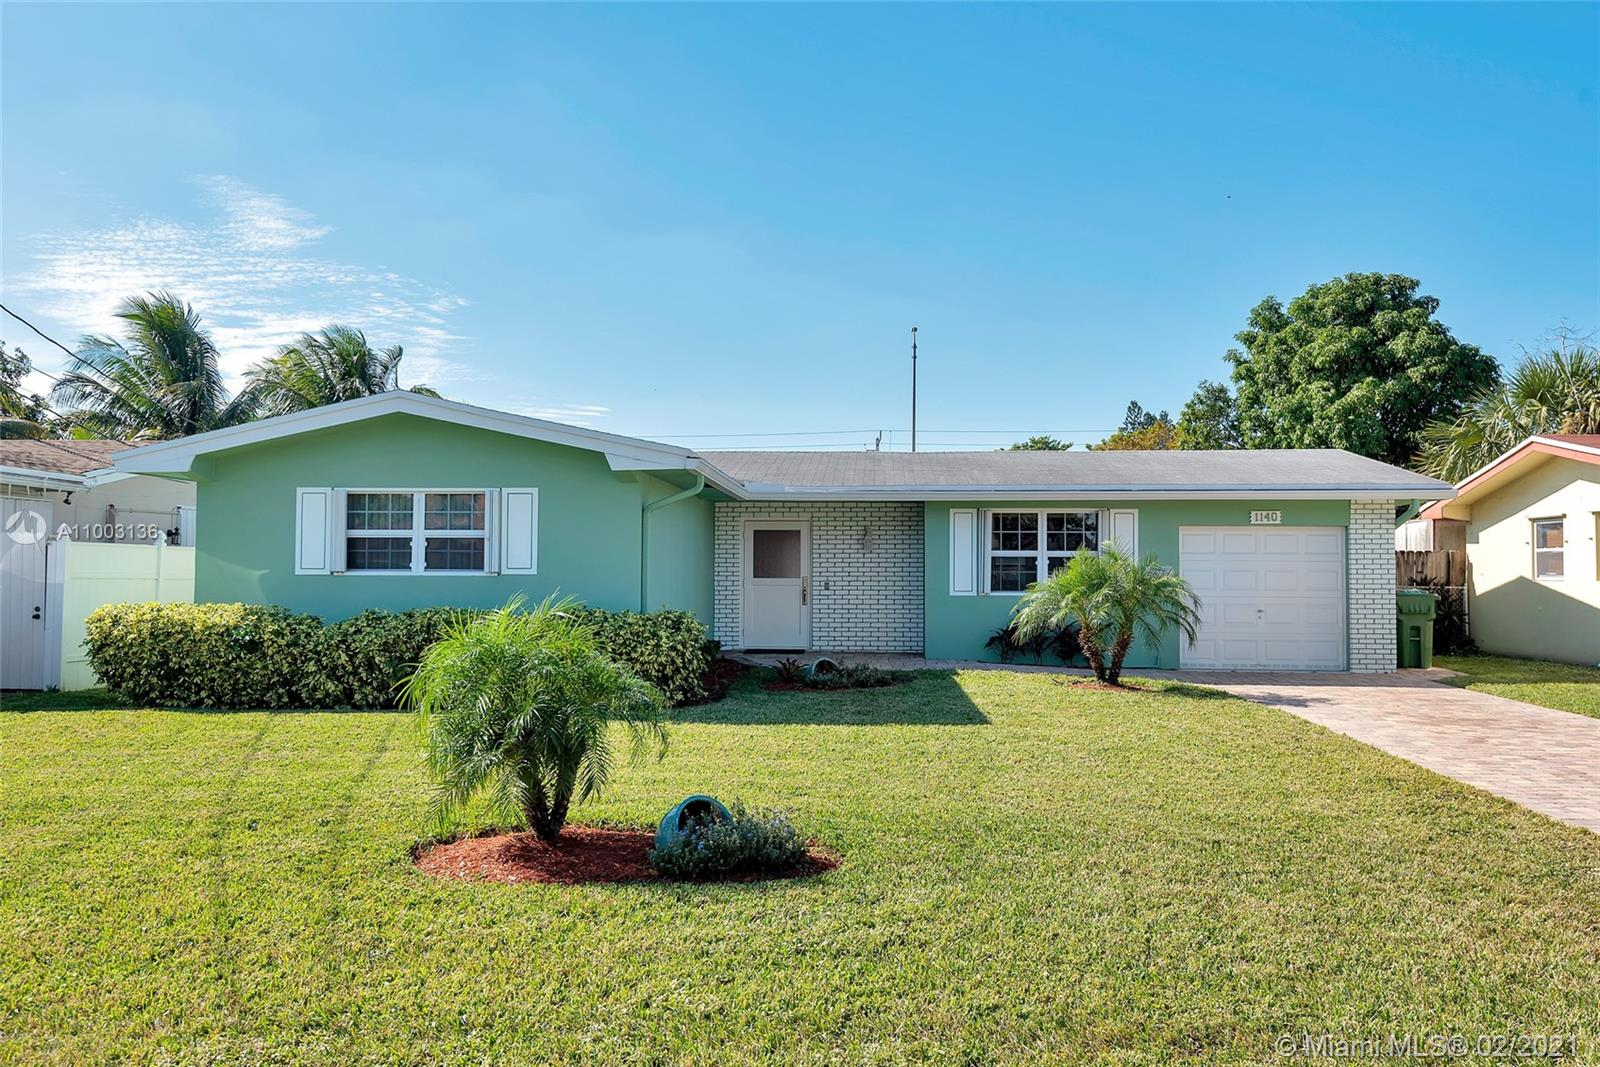 Boulevard Heights - 1140 NW 79th Way, Pembroke Pines, FL 33024